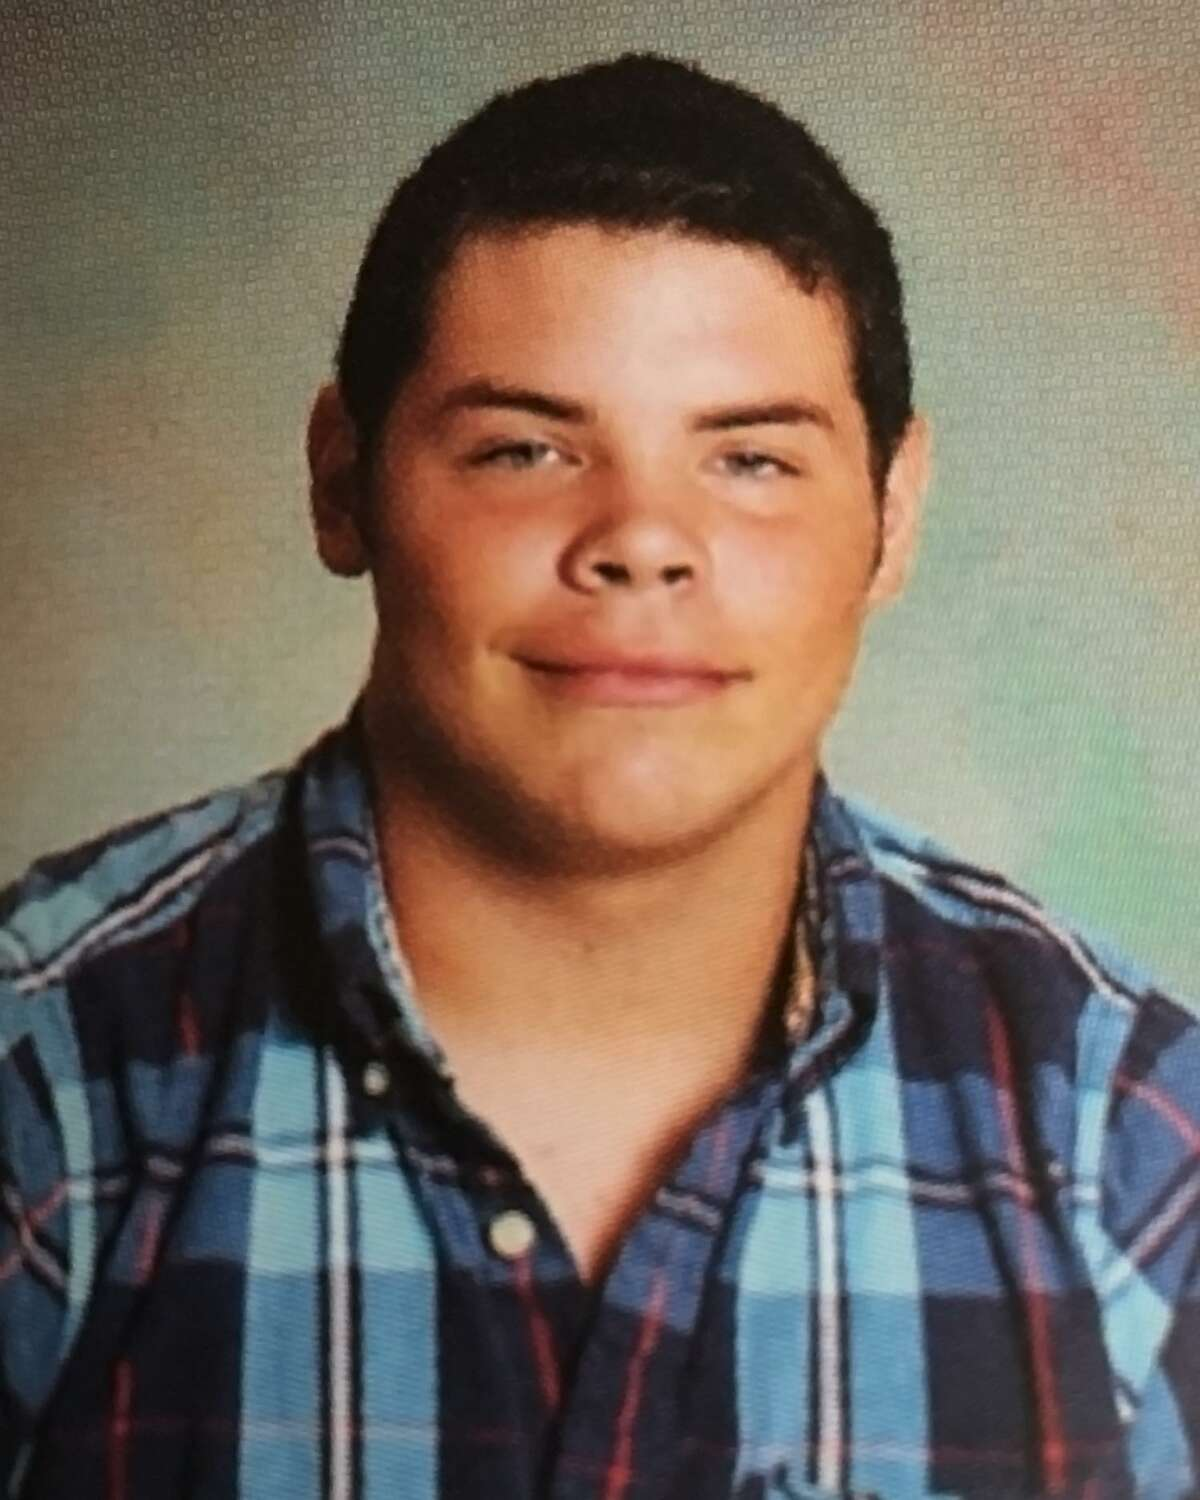 Jack Young, a photo from the Leakey High School yearbook. Young was the driver of a pickup truck which was in a head-on collision with a van resulting in deaths of 13 people.